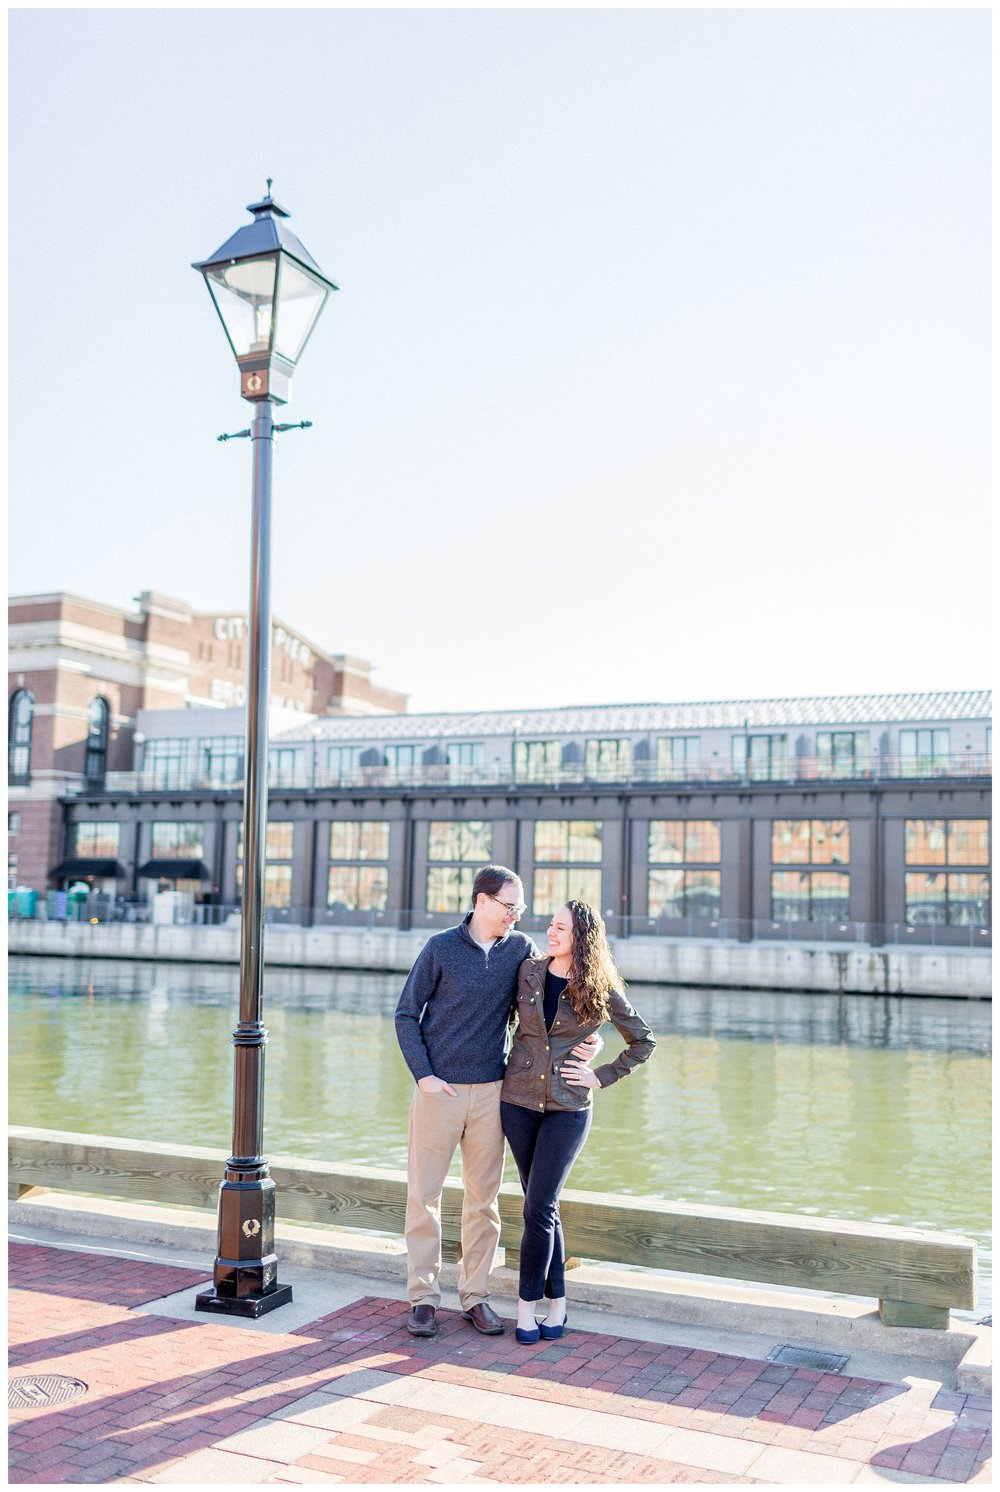 Baltimore Engagement Pictures | Maryland Wedding Photographer Kir Tuben_0042.jpg